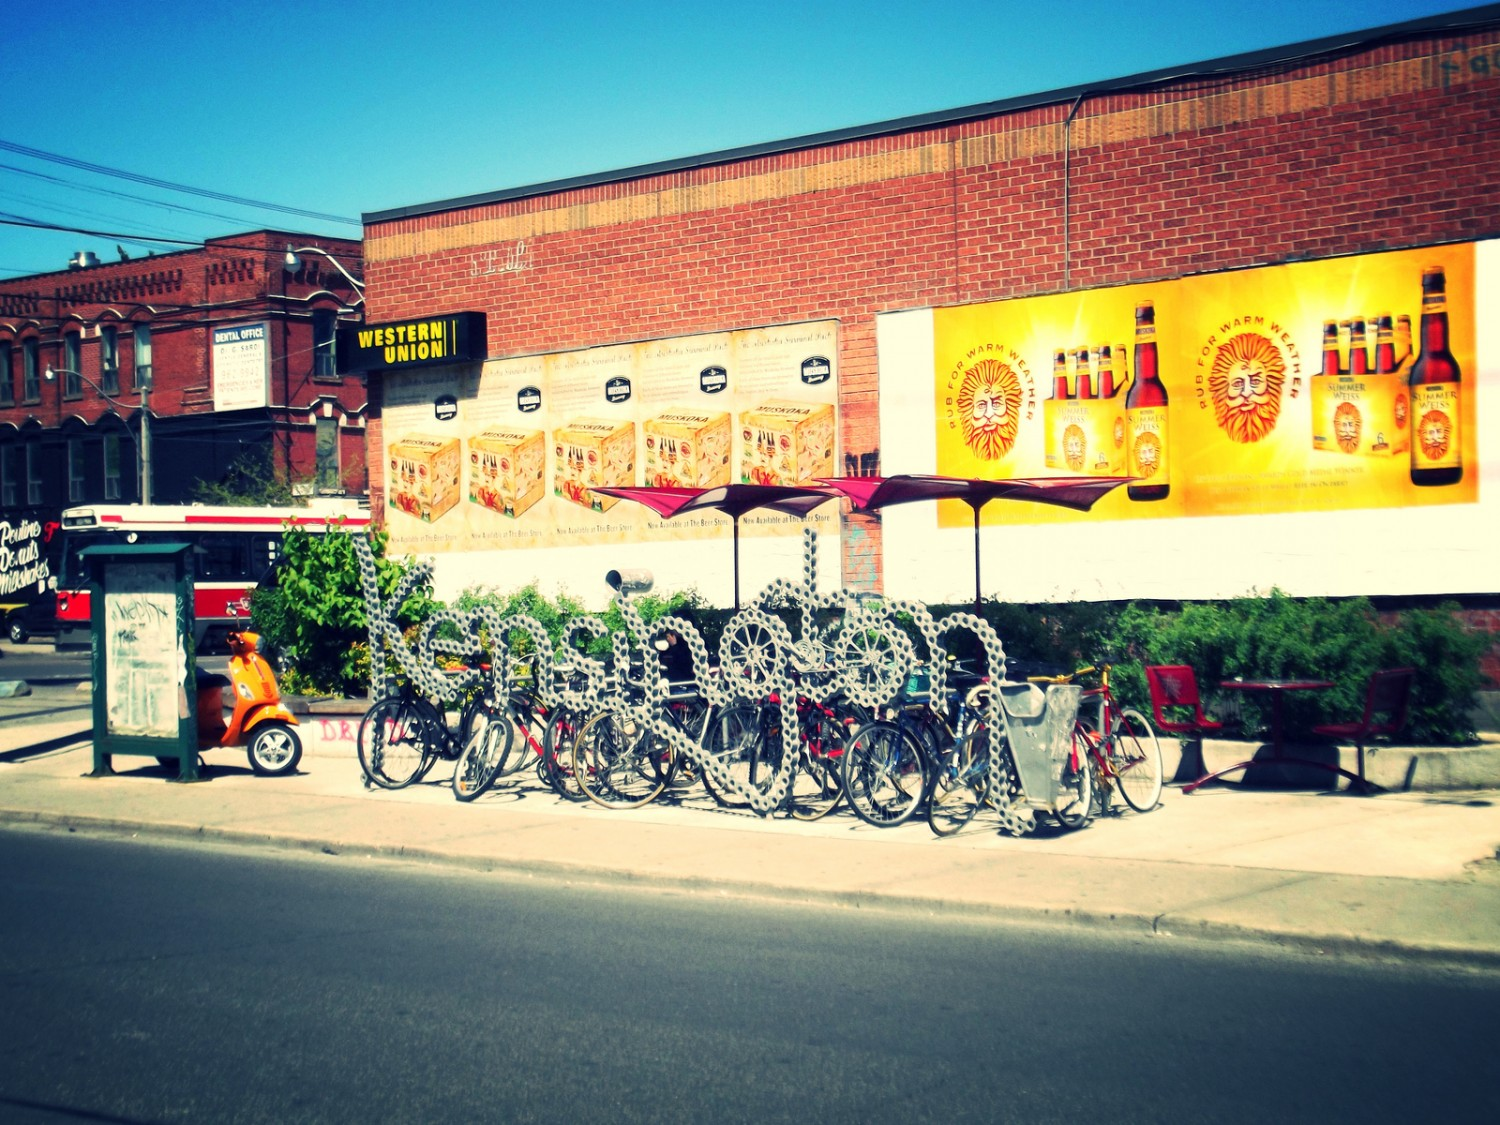 kensington market, bicycles, toronto, college street, things to do in toronto, what not to do in toronto